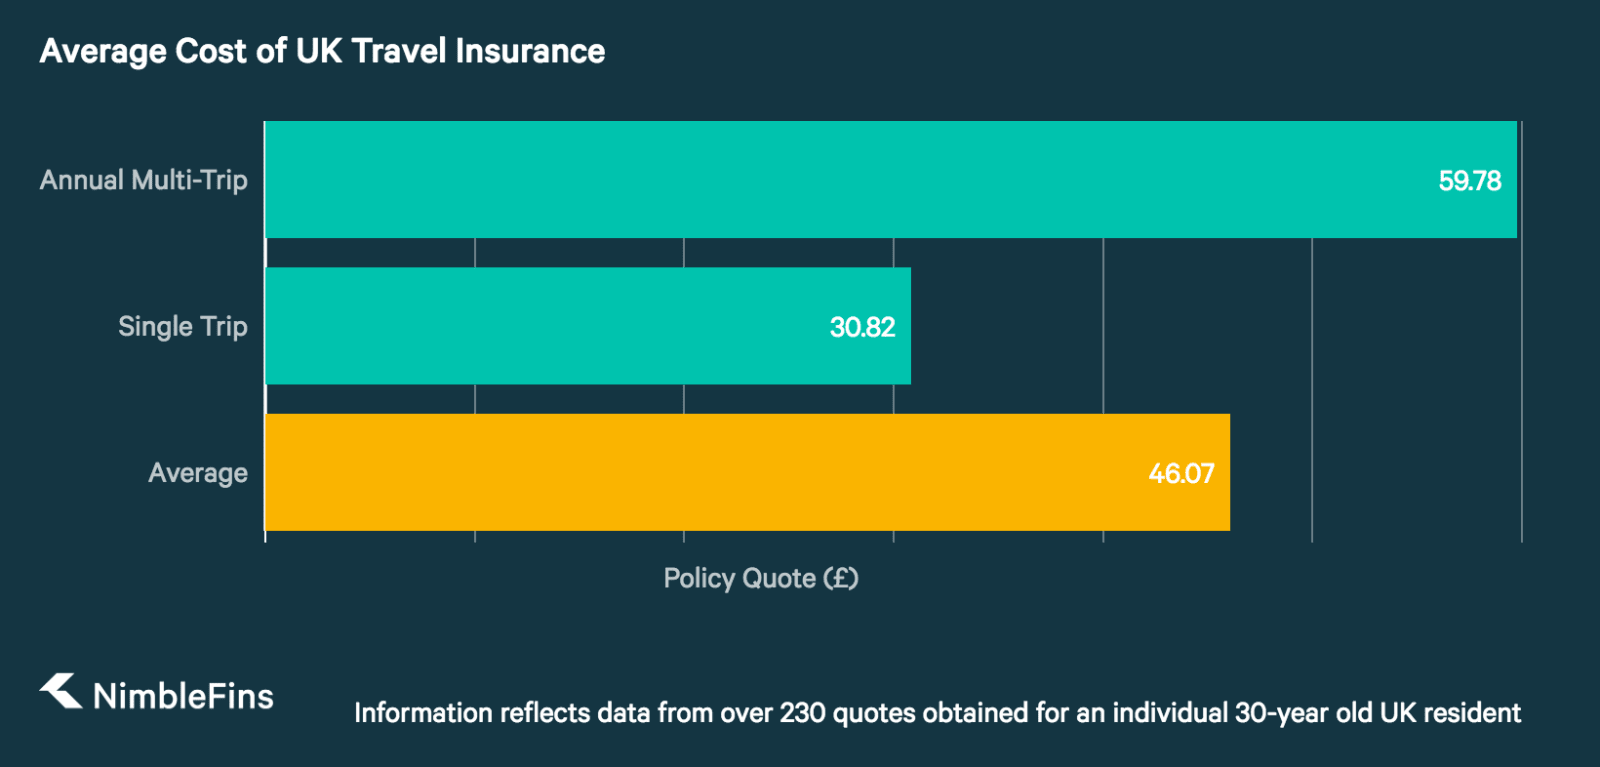 How Much Does Travel Insurance Cost in the UK on Average ...